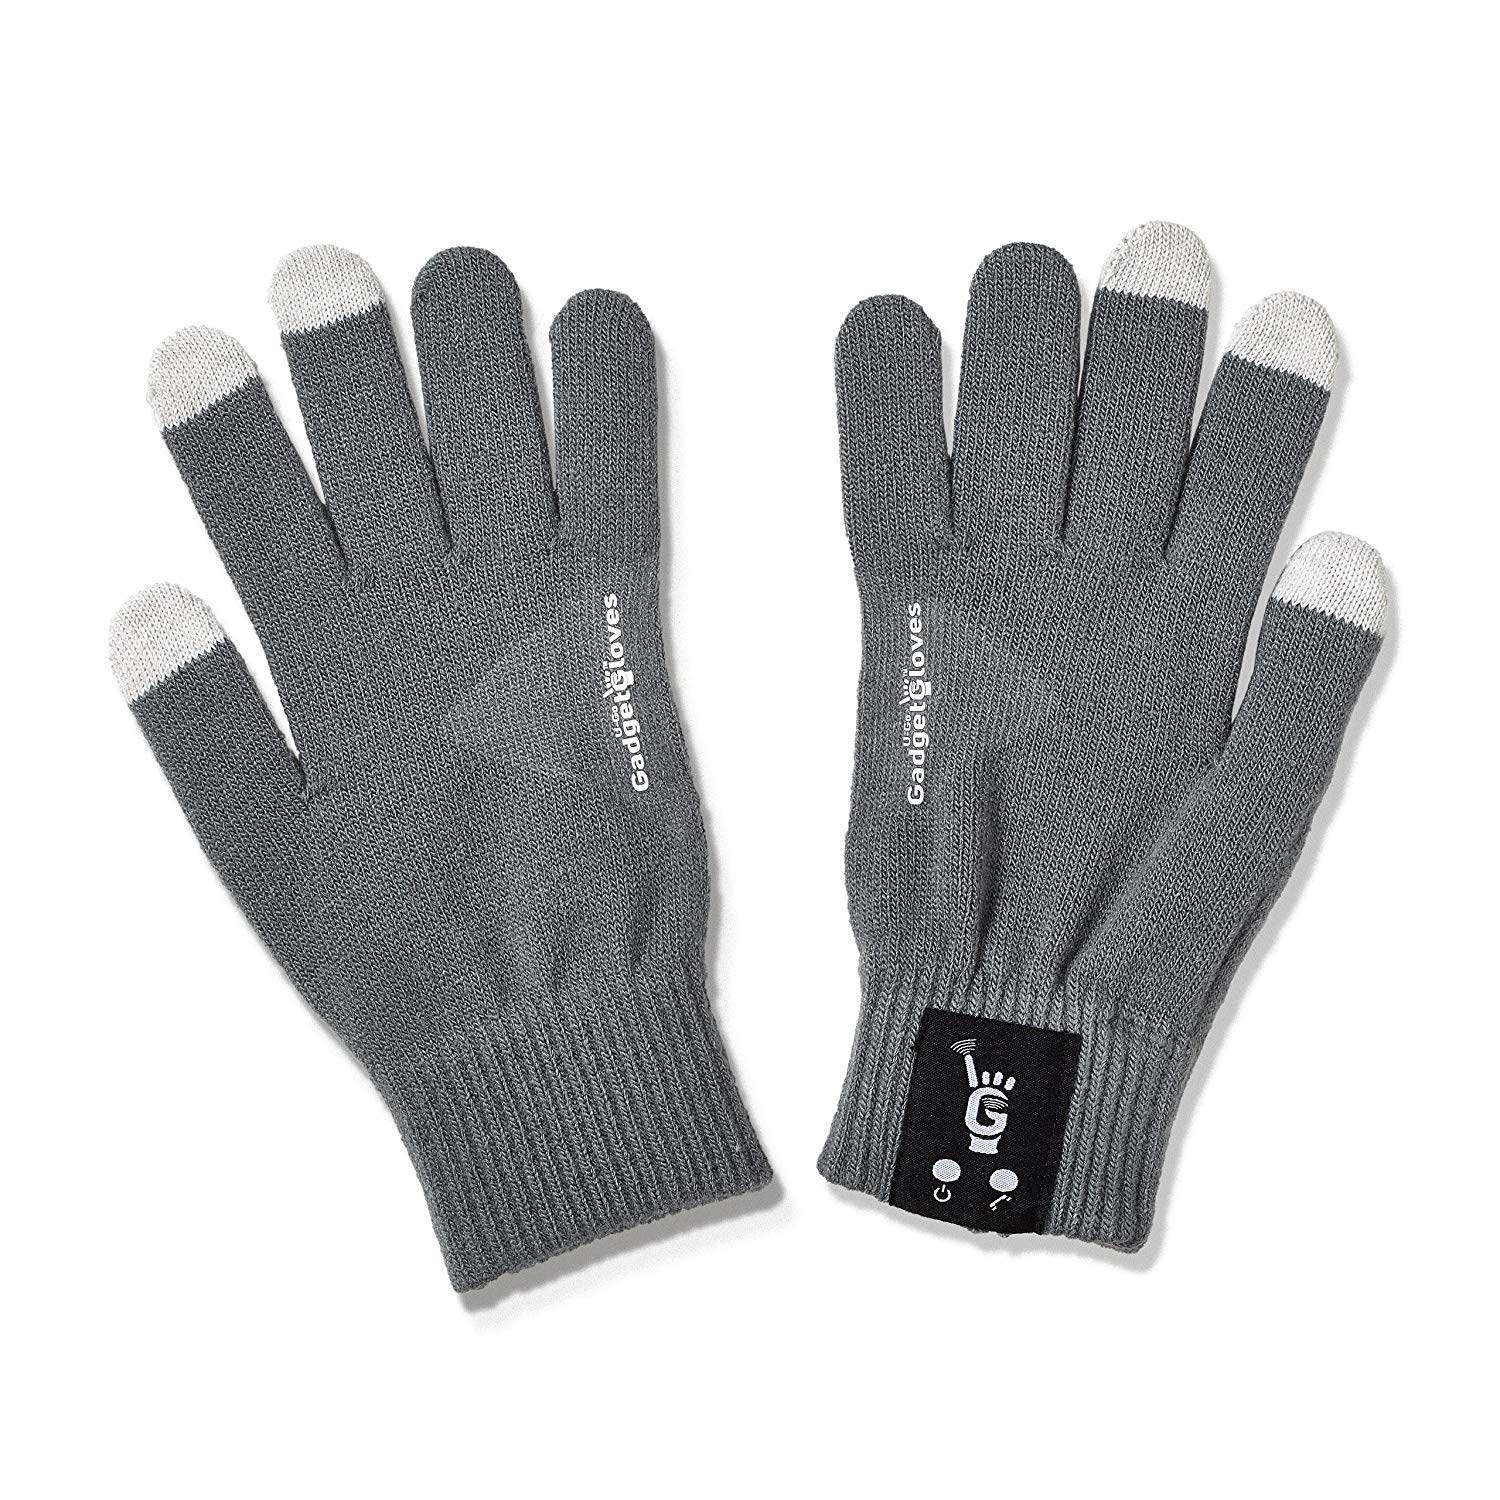 Bluetooth Mic and Speaker Gloves 11